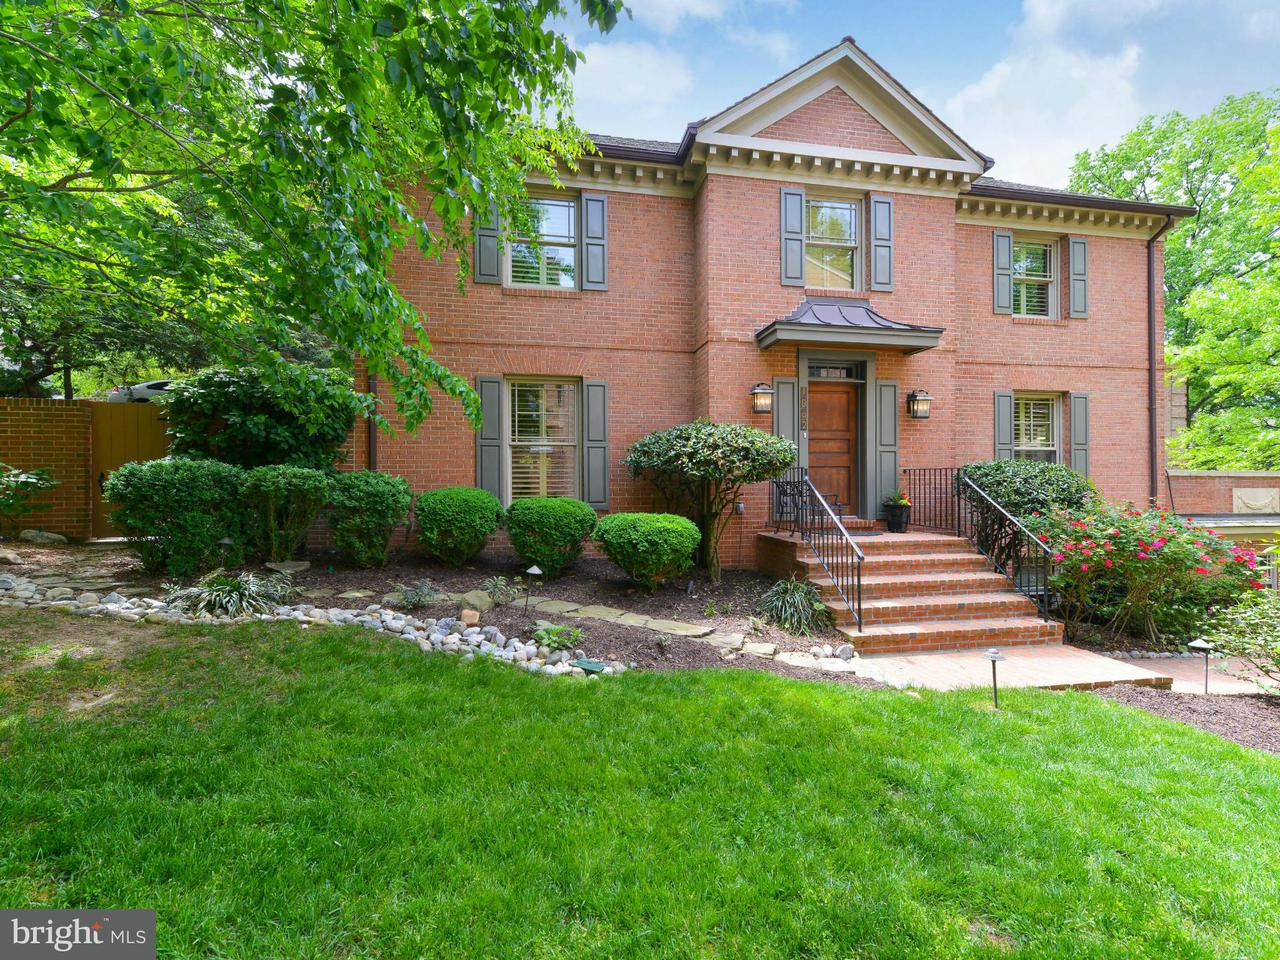 Townhouse for Sale at 1802 24TH ST S 1802 24TH ST S Arlington, Virginia 22202 United States